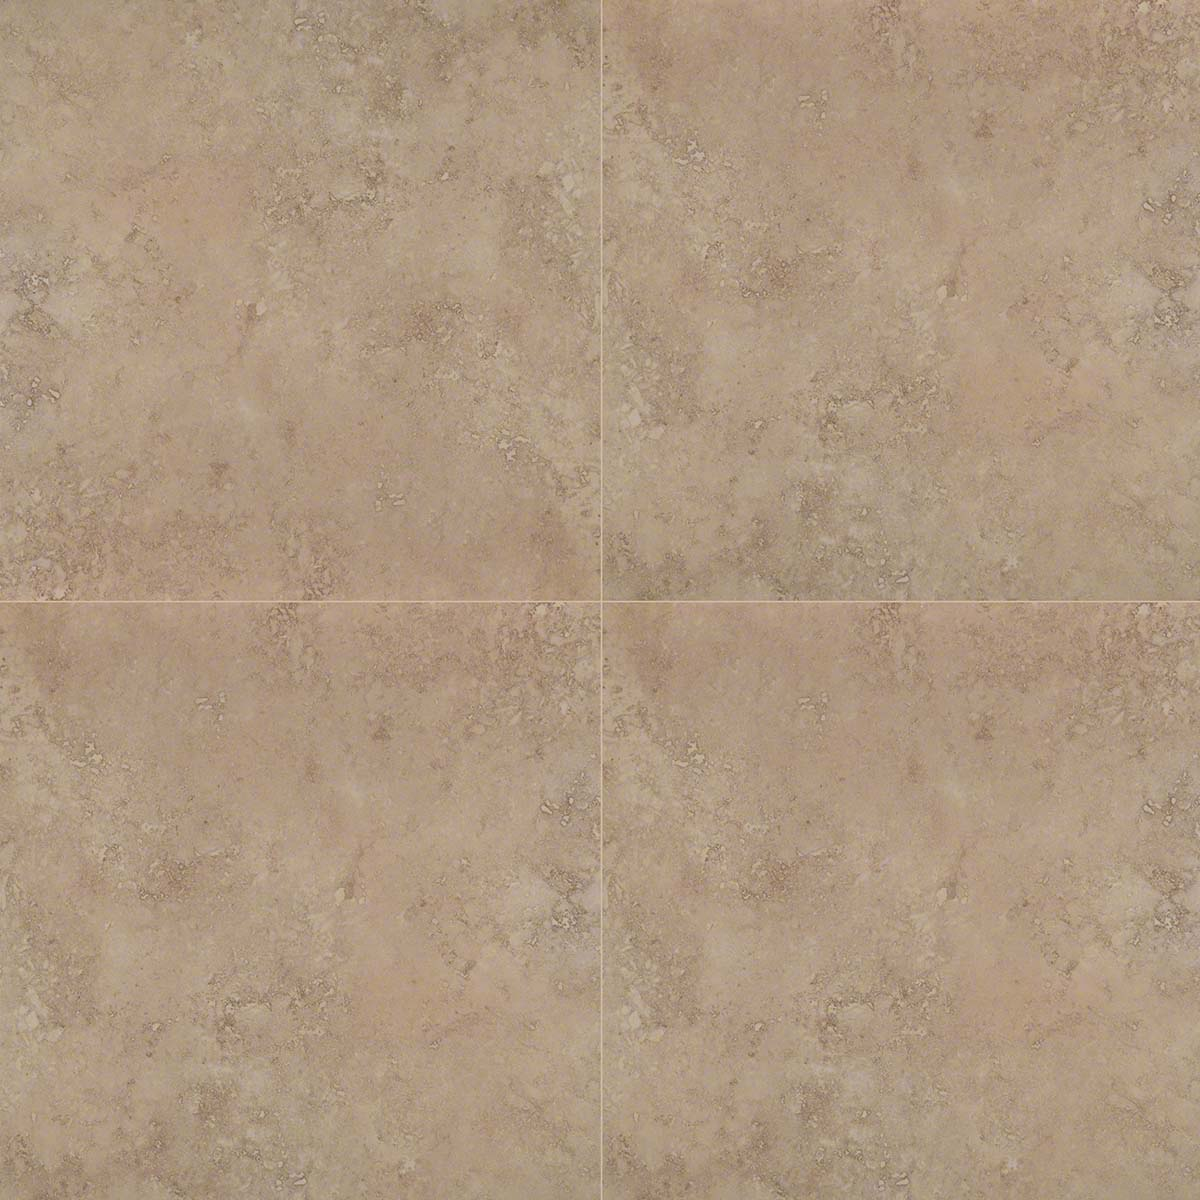 Porcelain Tile Flooring At Wholesale Prices